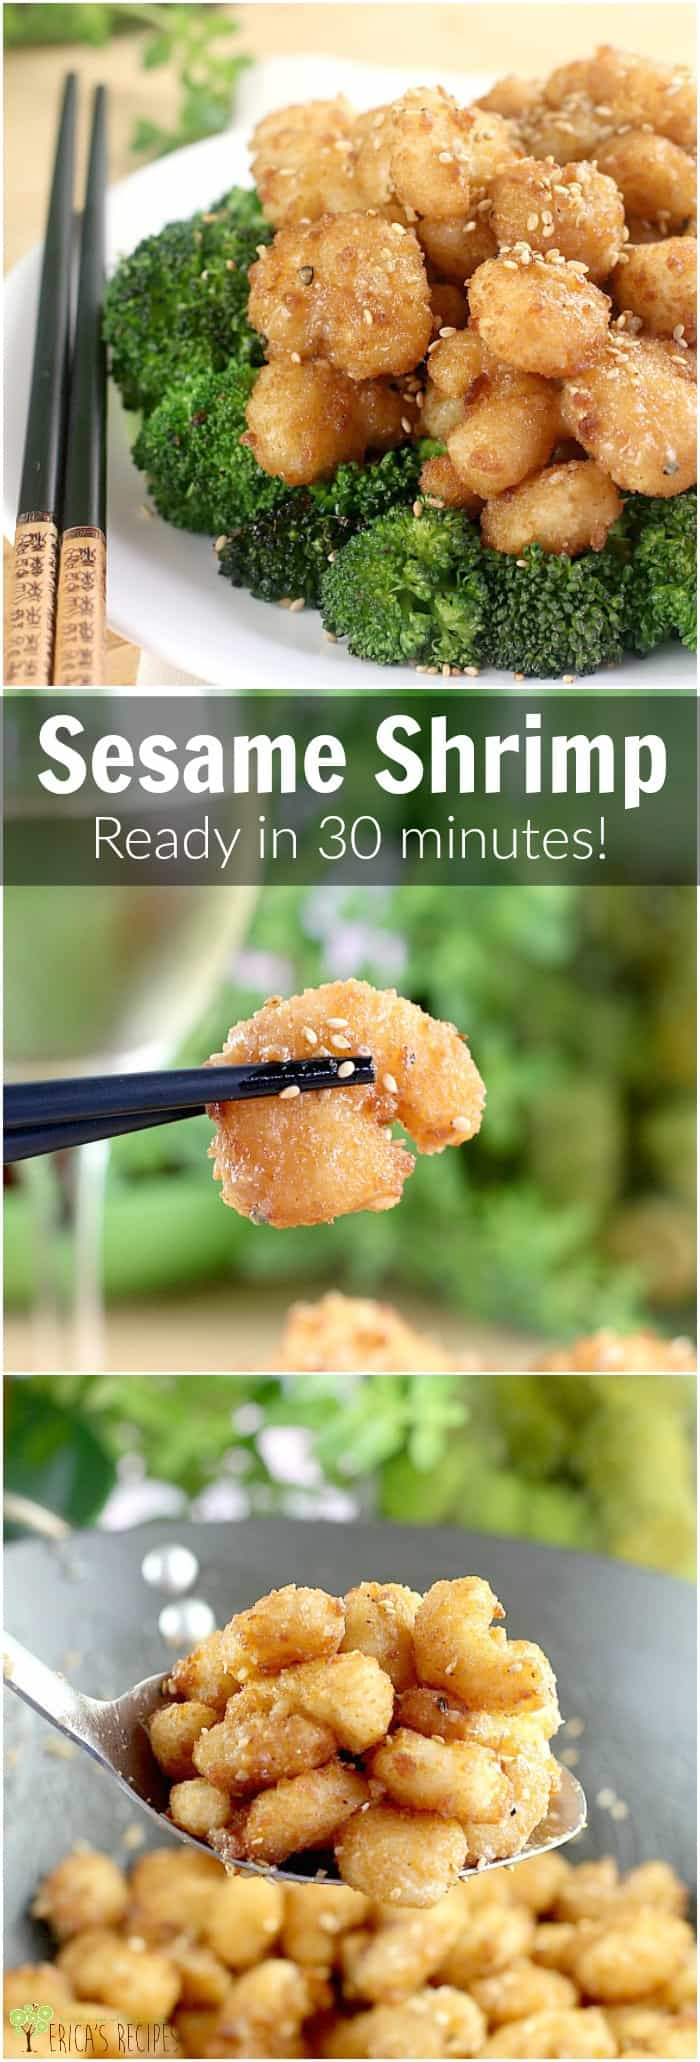 Msg 4 21+ Sesame Shrimp (30 Minute Meal!) http://wp.me/p4qC4h-3ED #40PerfectPairings #ad